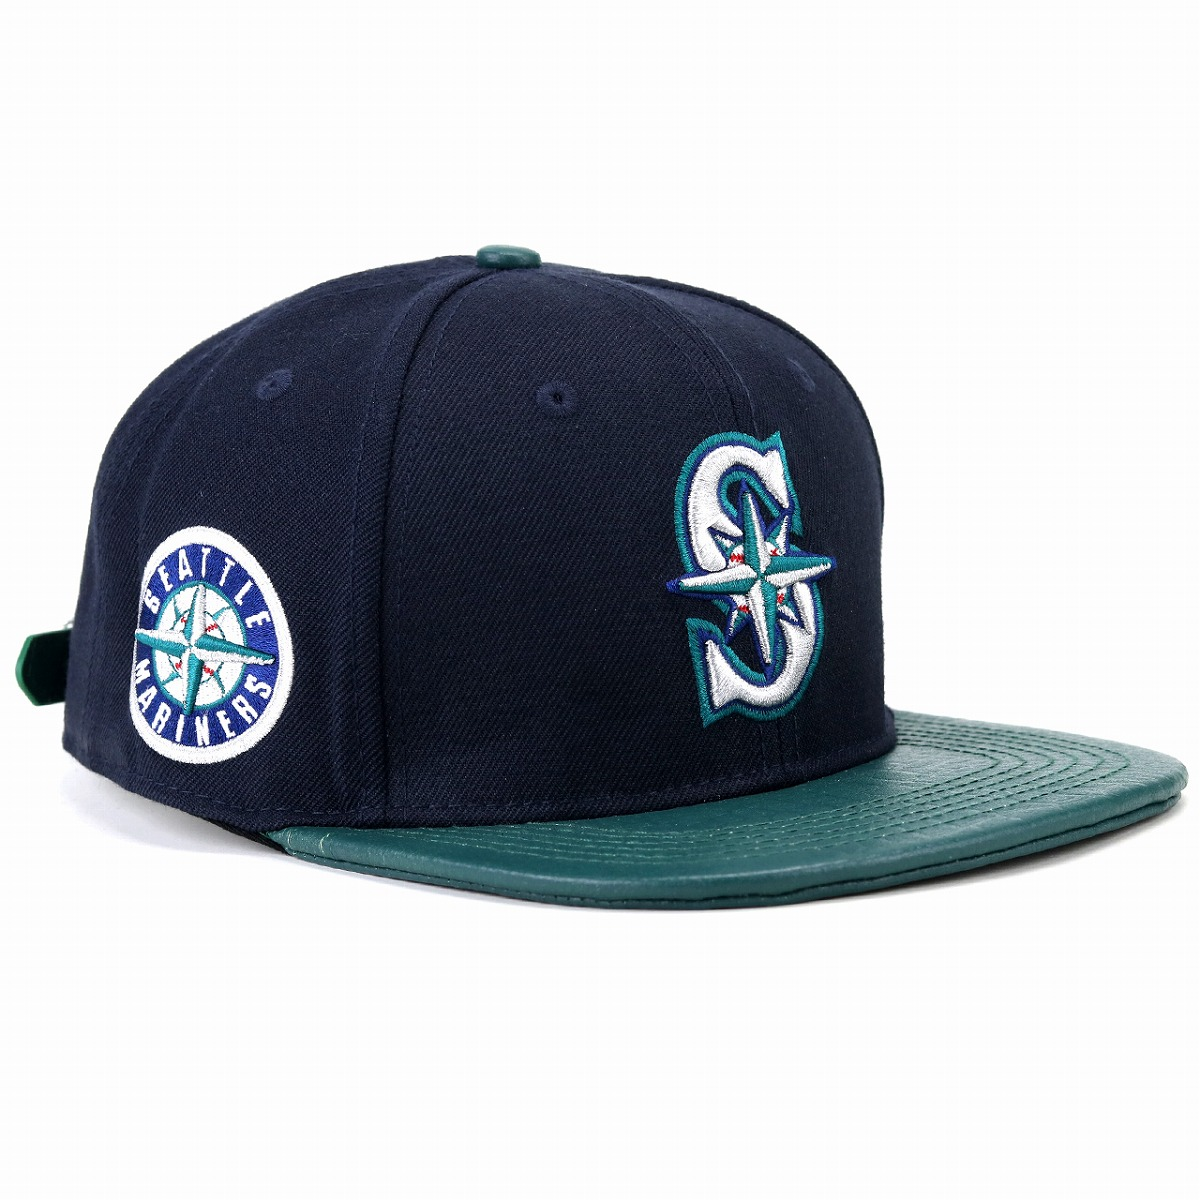 Pro Standard Seattle Mariners logo cap Seattle mariners Logo cap MLB men  gap Dis hat pro standard baseball cap dark blue navy  baseball cap  f1c2ea23e468